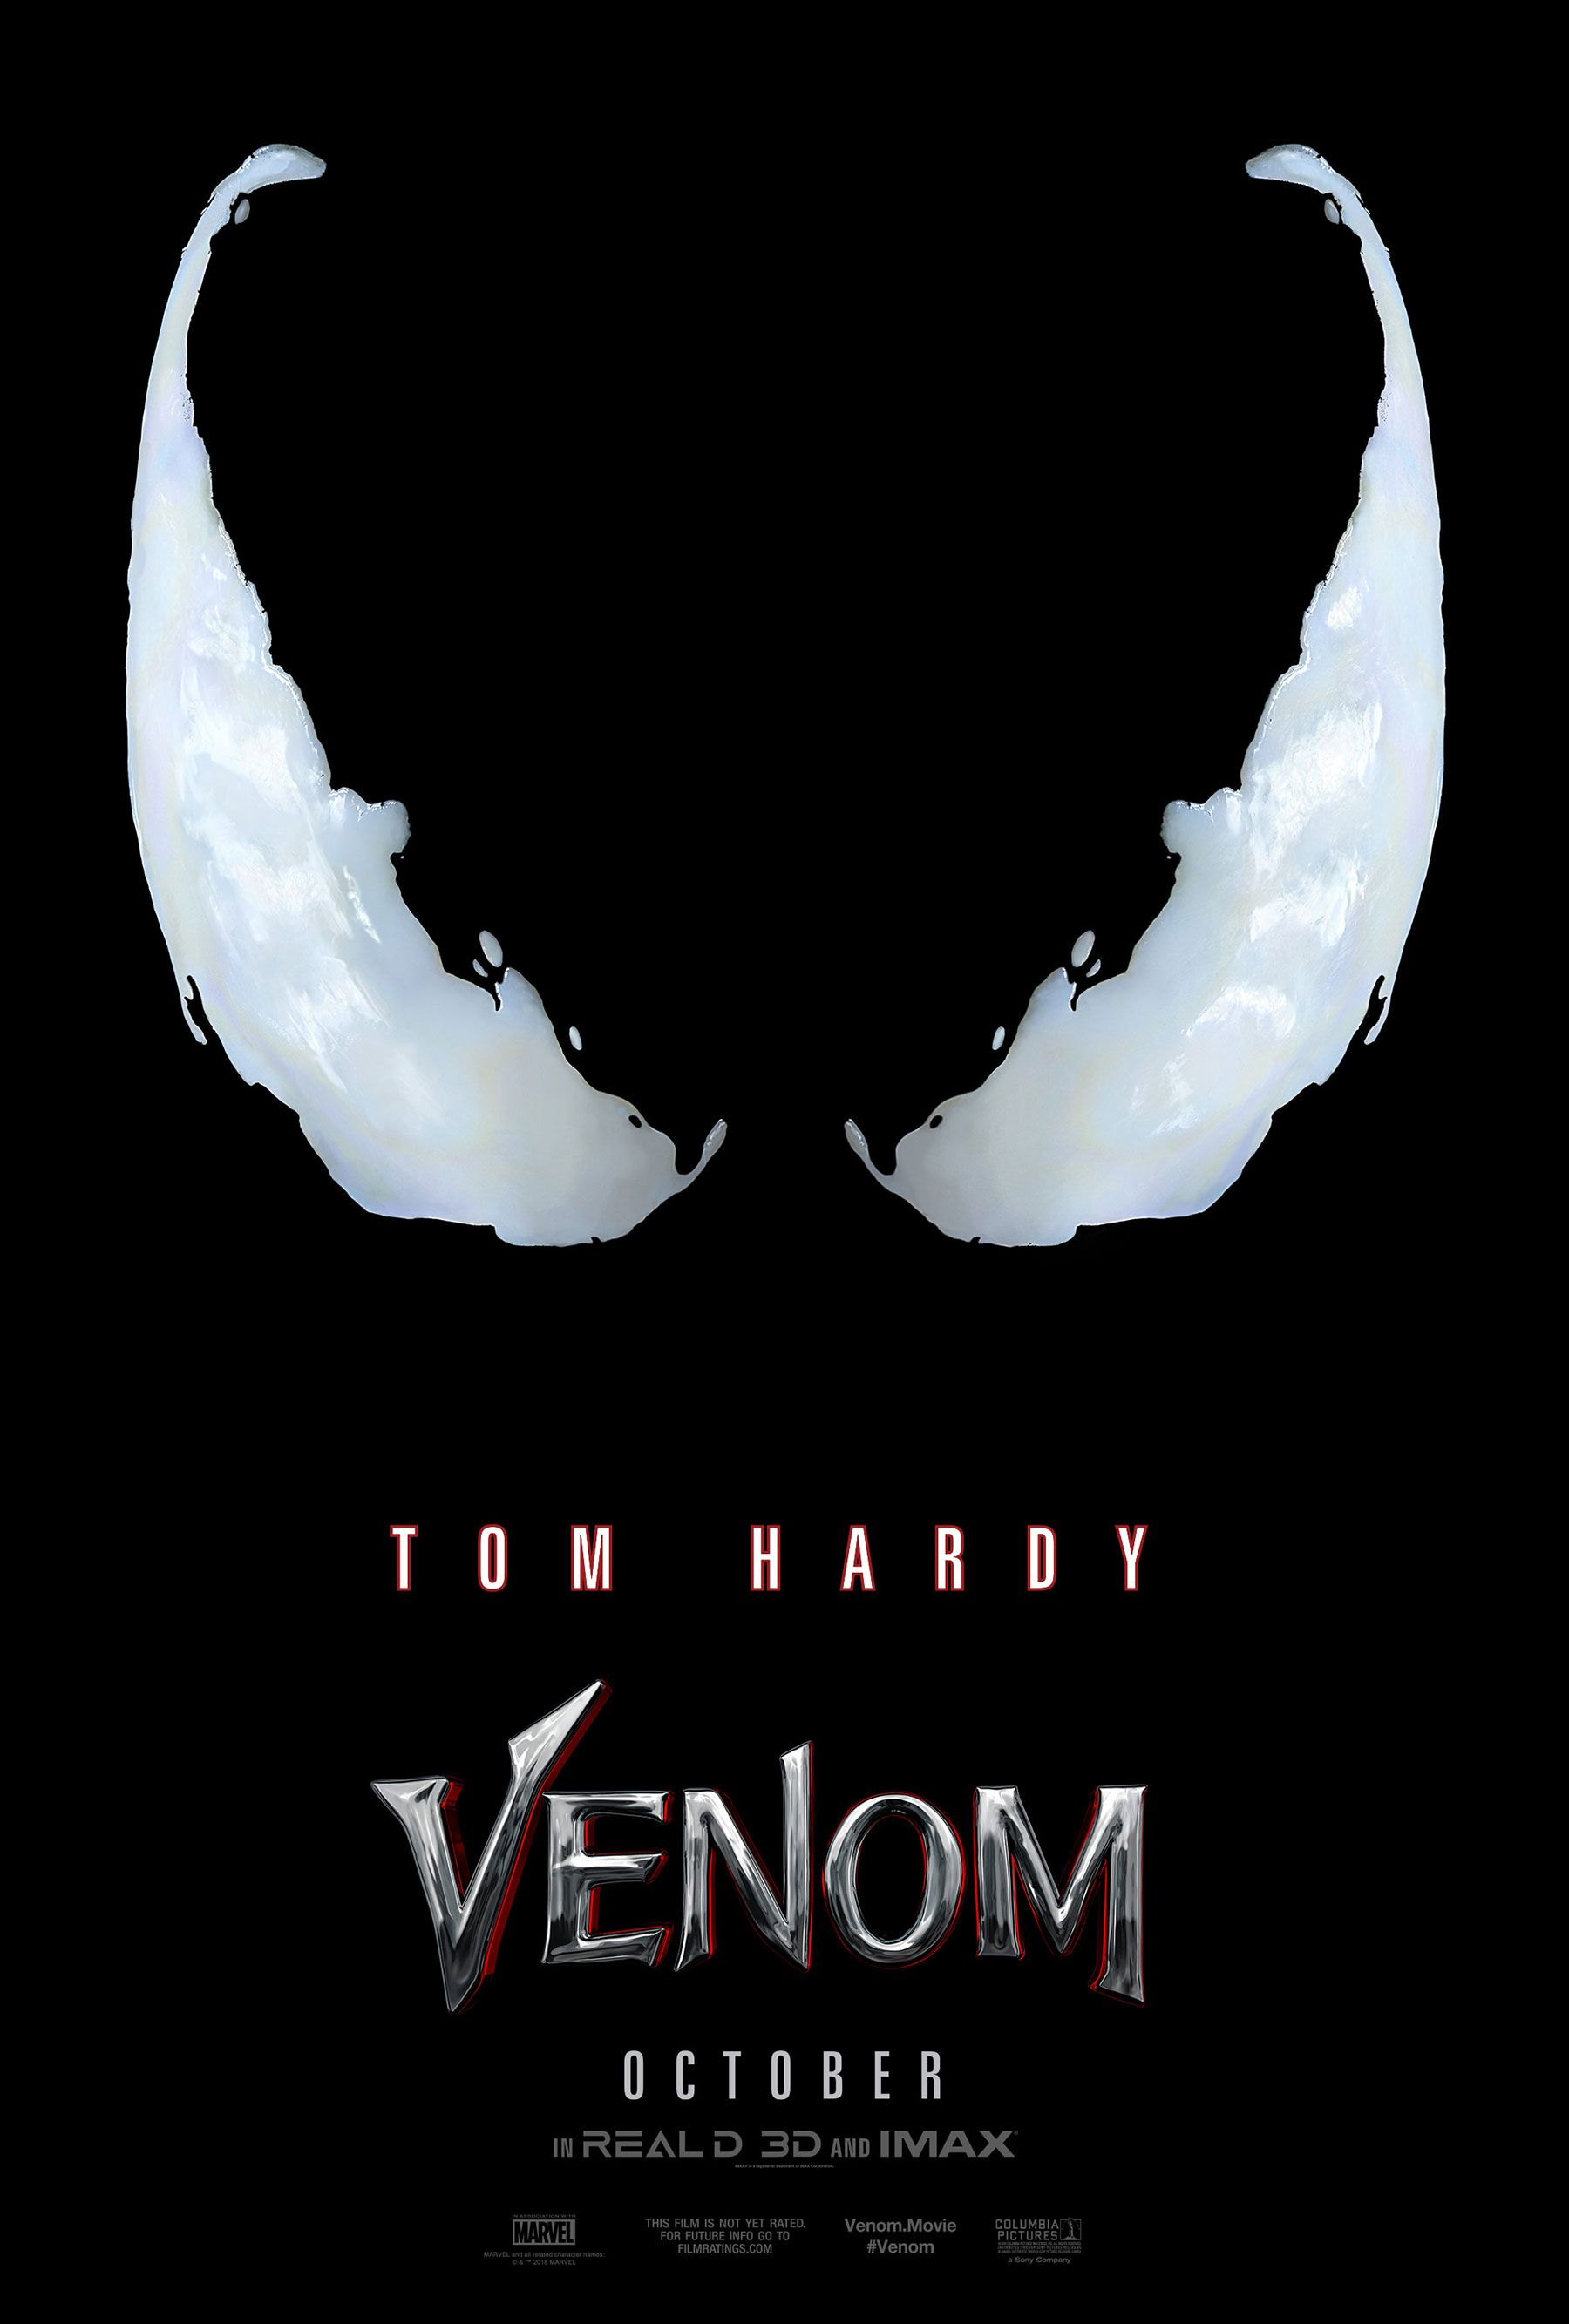 Venom Poster For Tom Hardy Film Teases Something Wicked In The Works